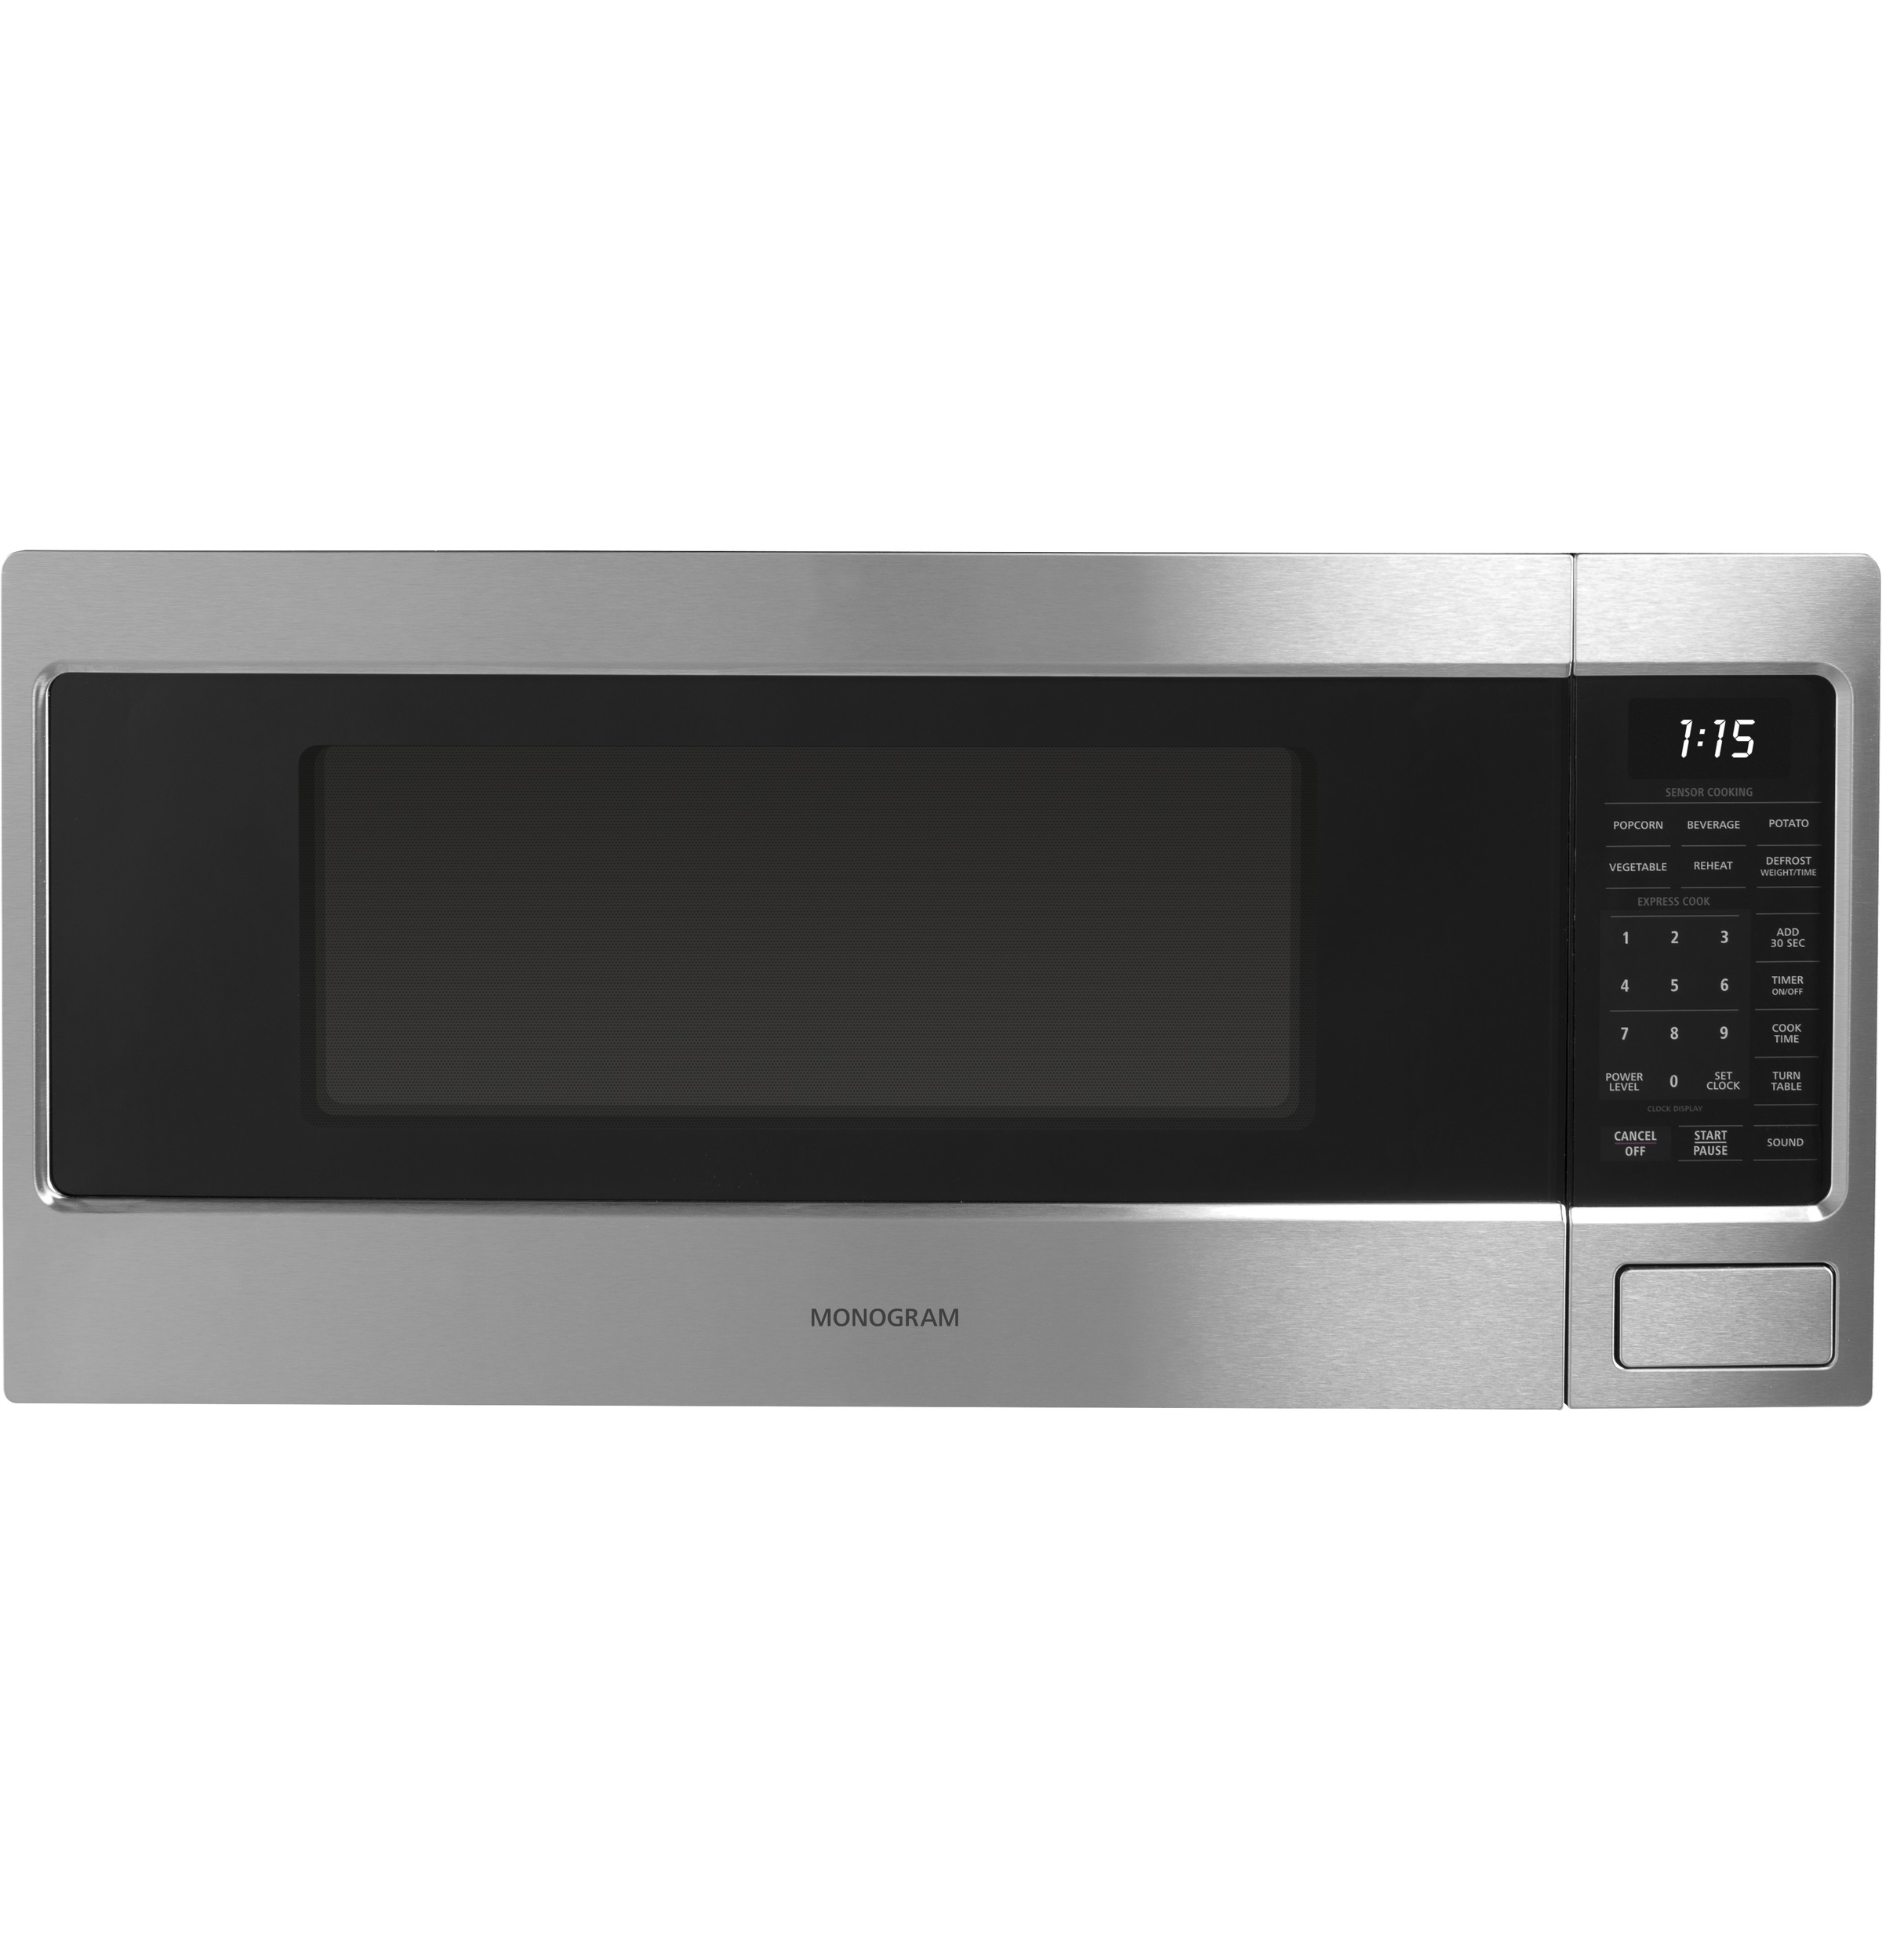 Countertop Microwave Placement : ... Cu. Ft. Countertop Microwave Oven - The Monogram Collection